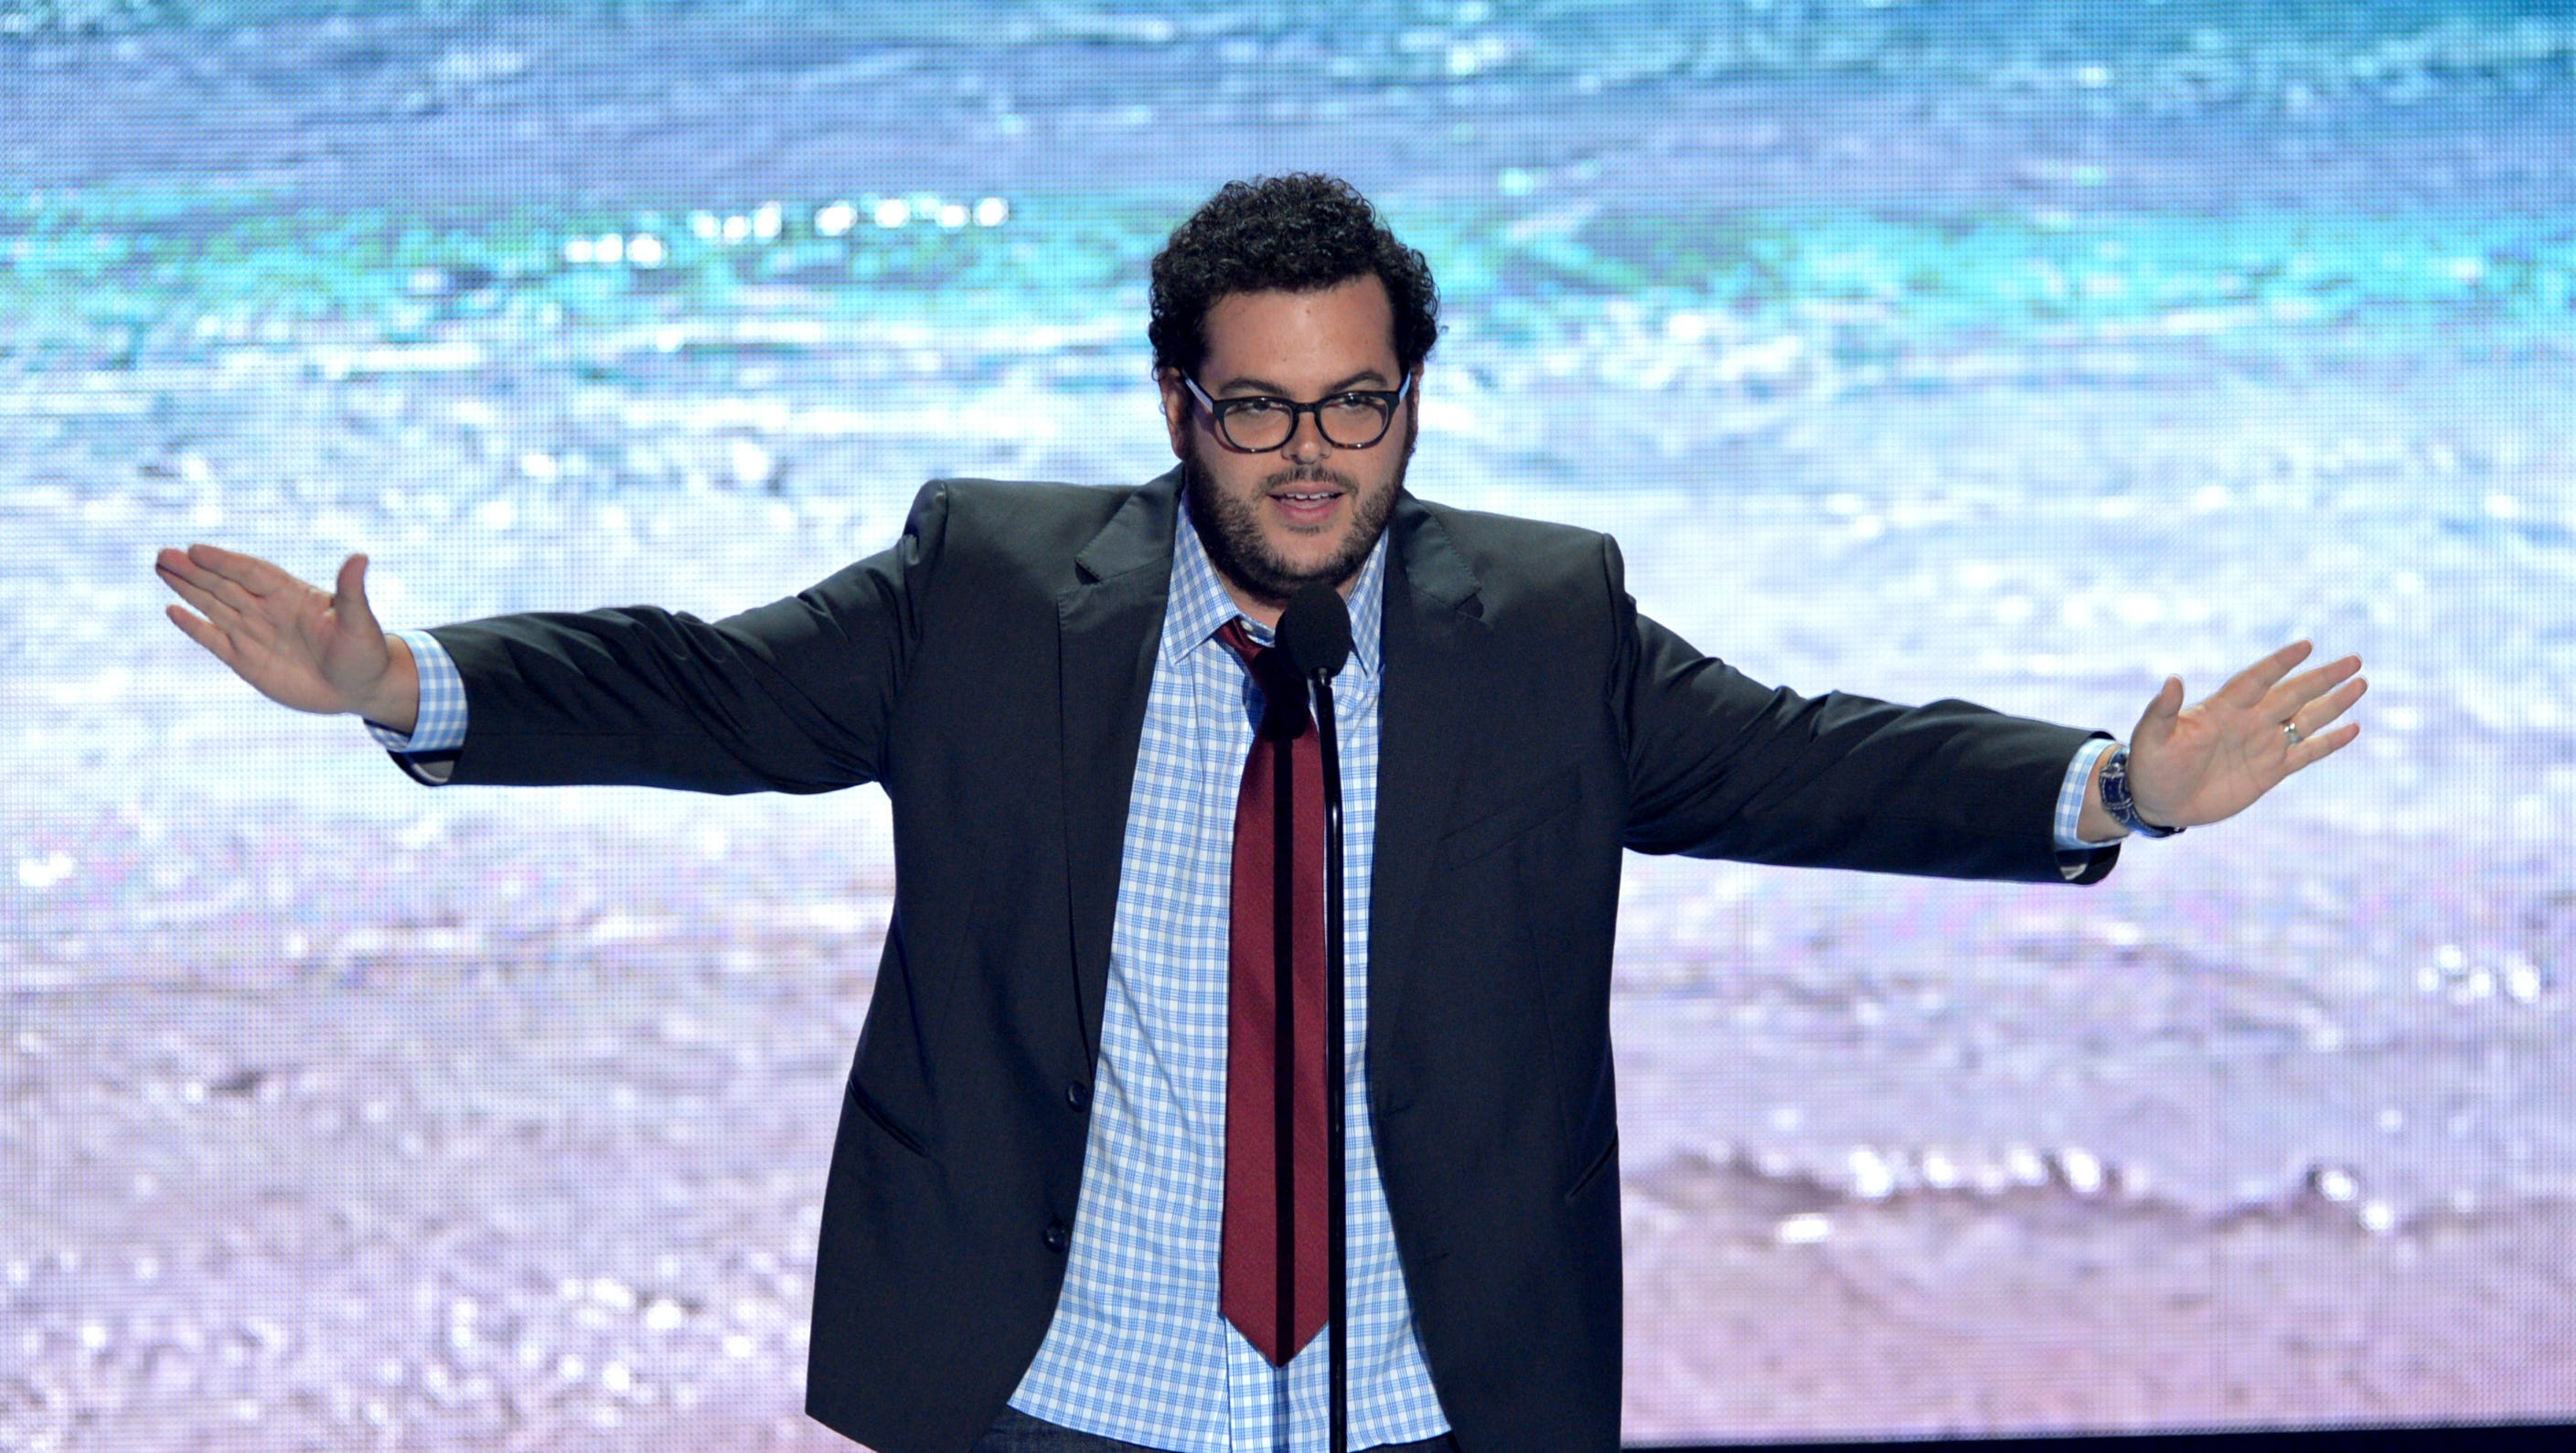 Presenter Josh Gad takes his turn at the mike.